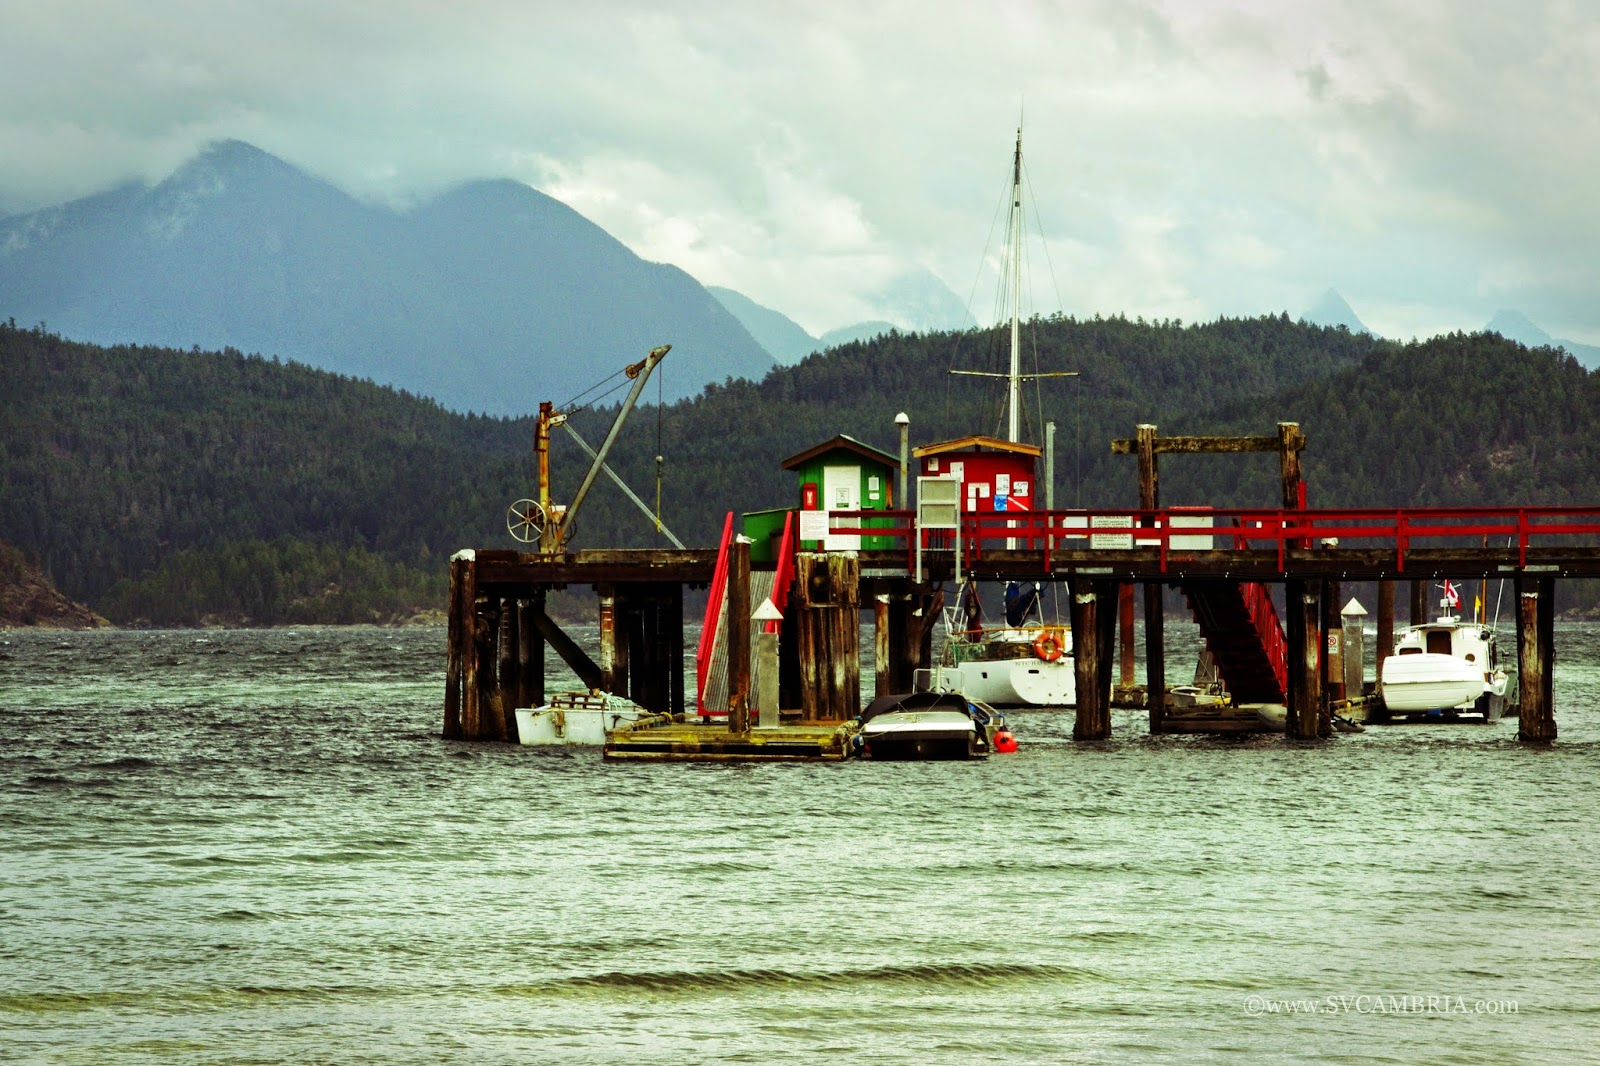 The public wharf in Squirrel Cove, Cortes Island.